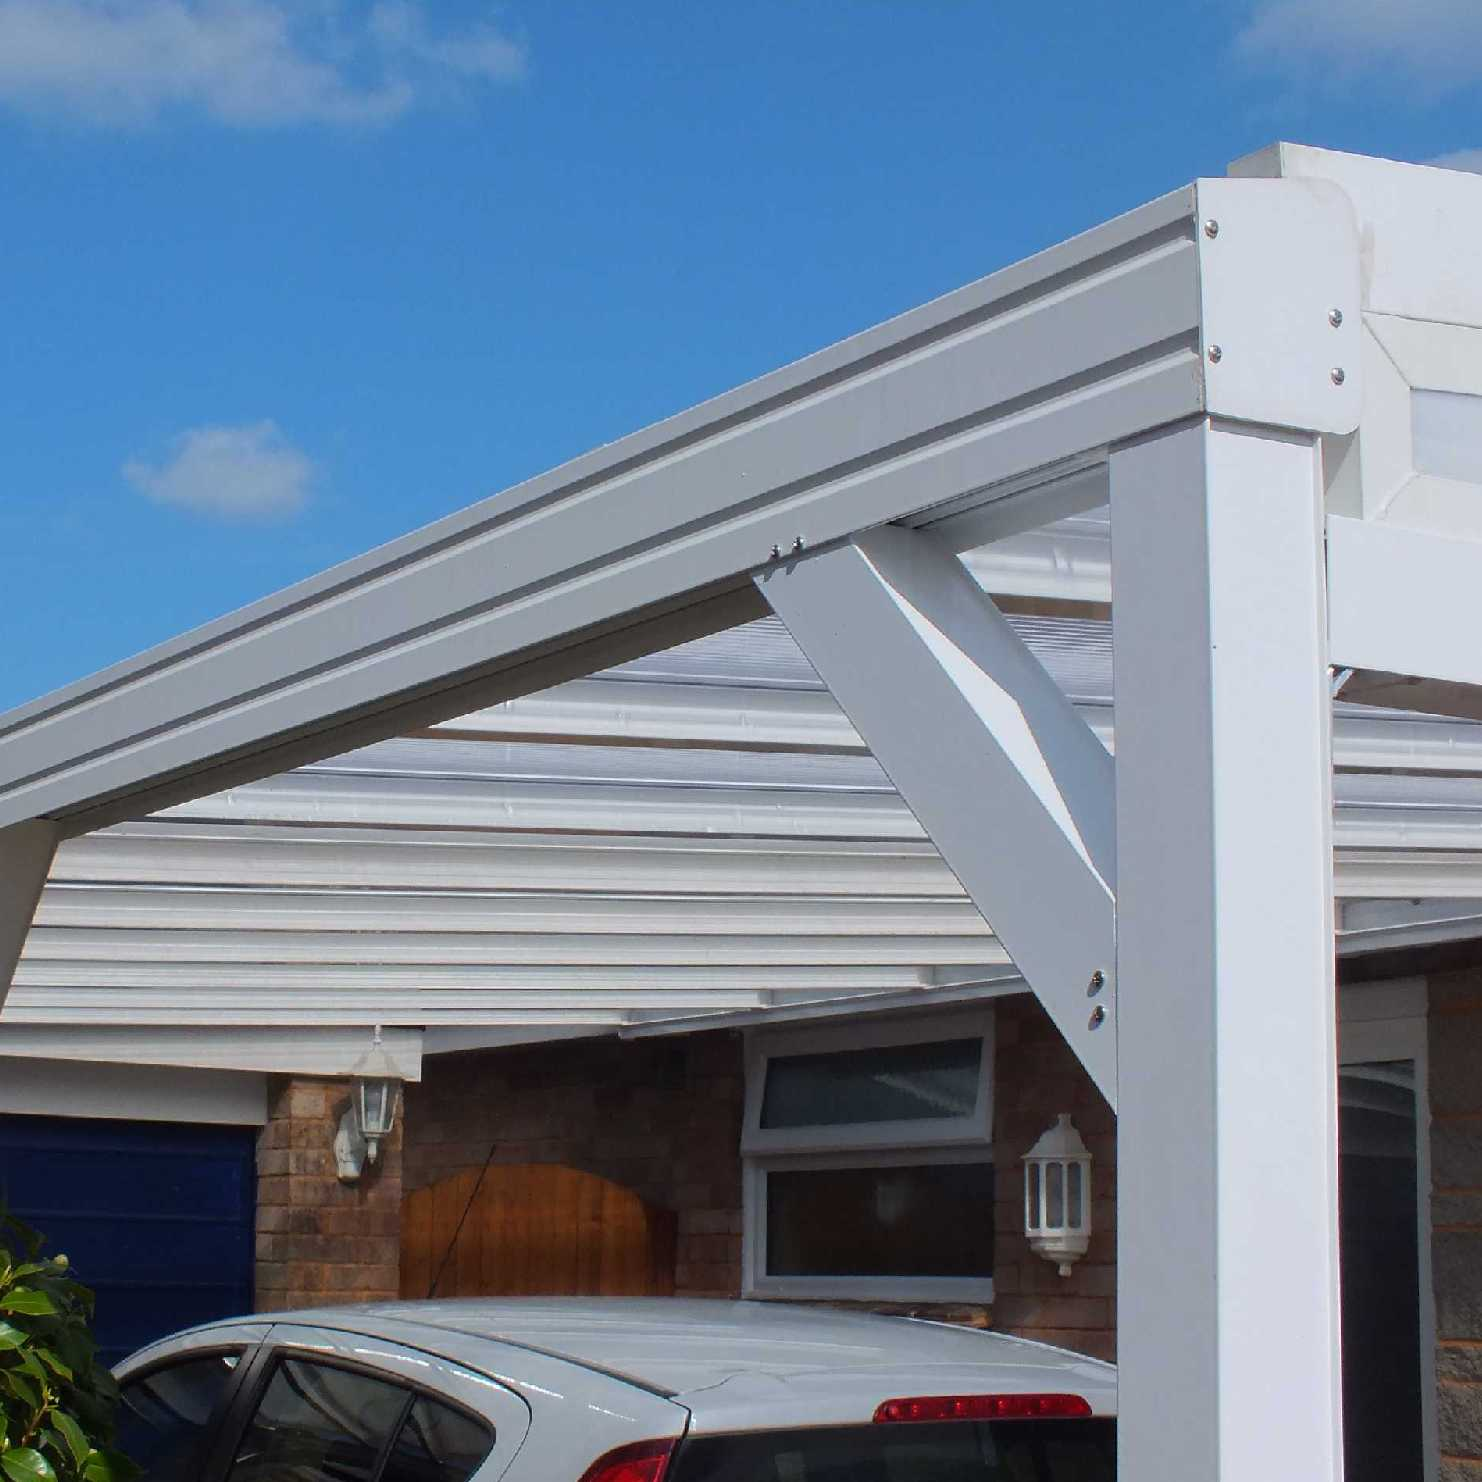 Buy Omega Smart White Lean-To Canopy with 16mm Polycarbonate Glazing - 4.2m (W) x 2.0m (P), (3) Supporting Posts online today